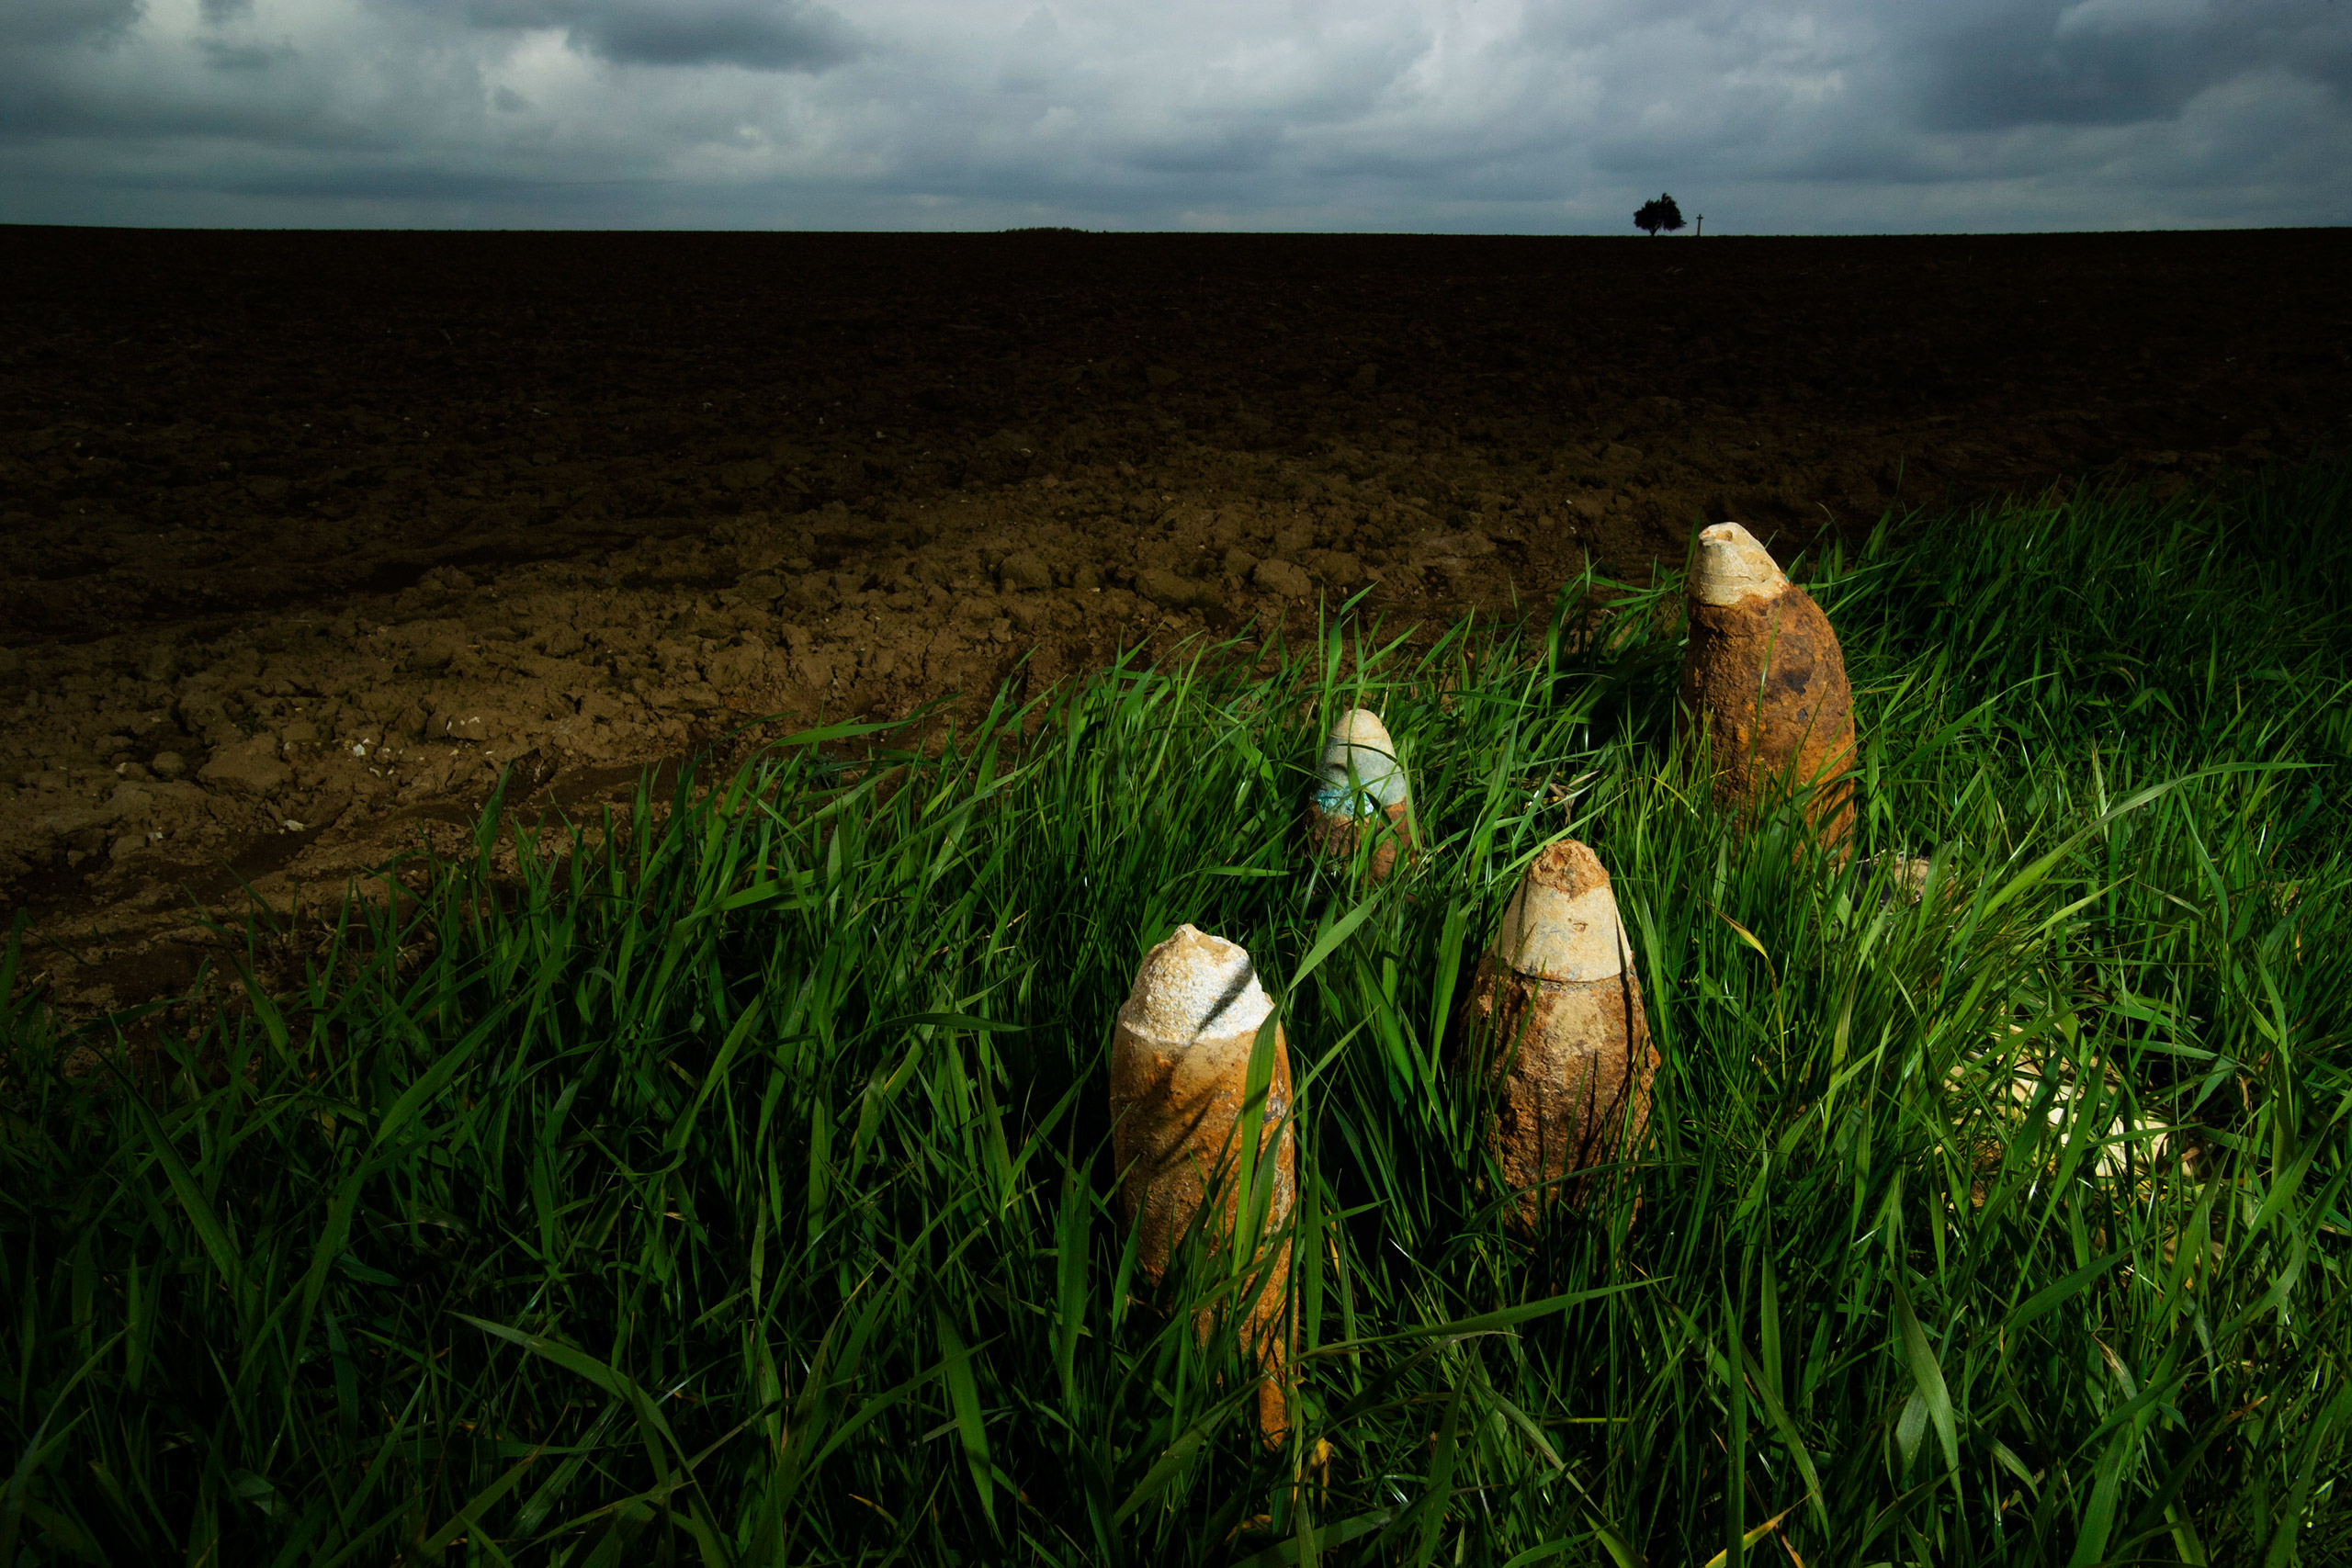 Unexploded shells uncovered by ploughing near Munich Trench Cemetery awaiting collection by the Bomb Squad.